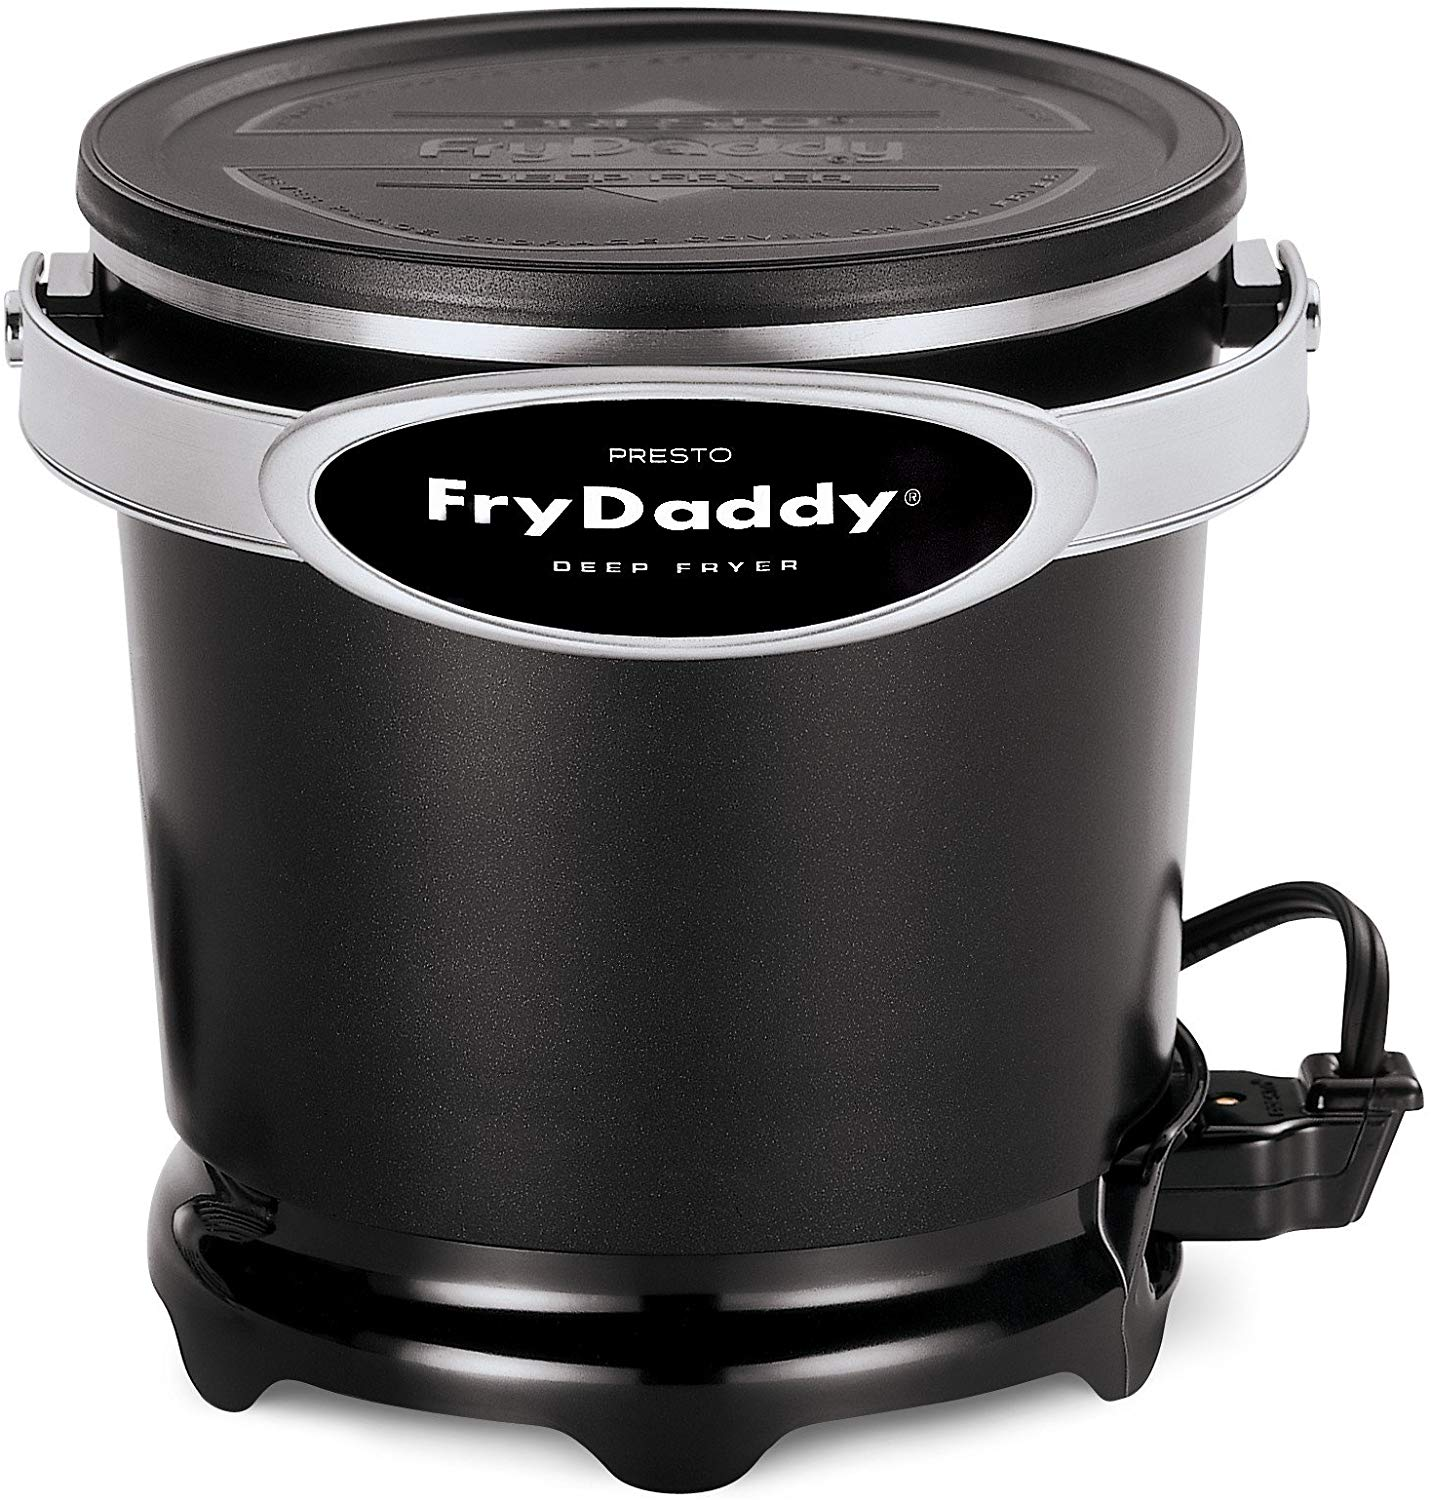 Presto® frydaddy® electric deep fryer, 4 cups